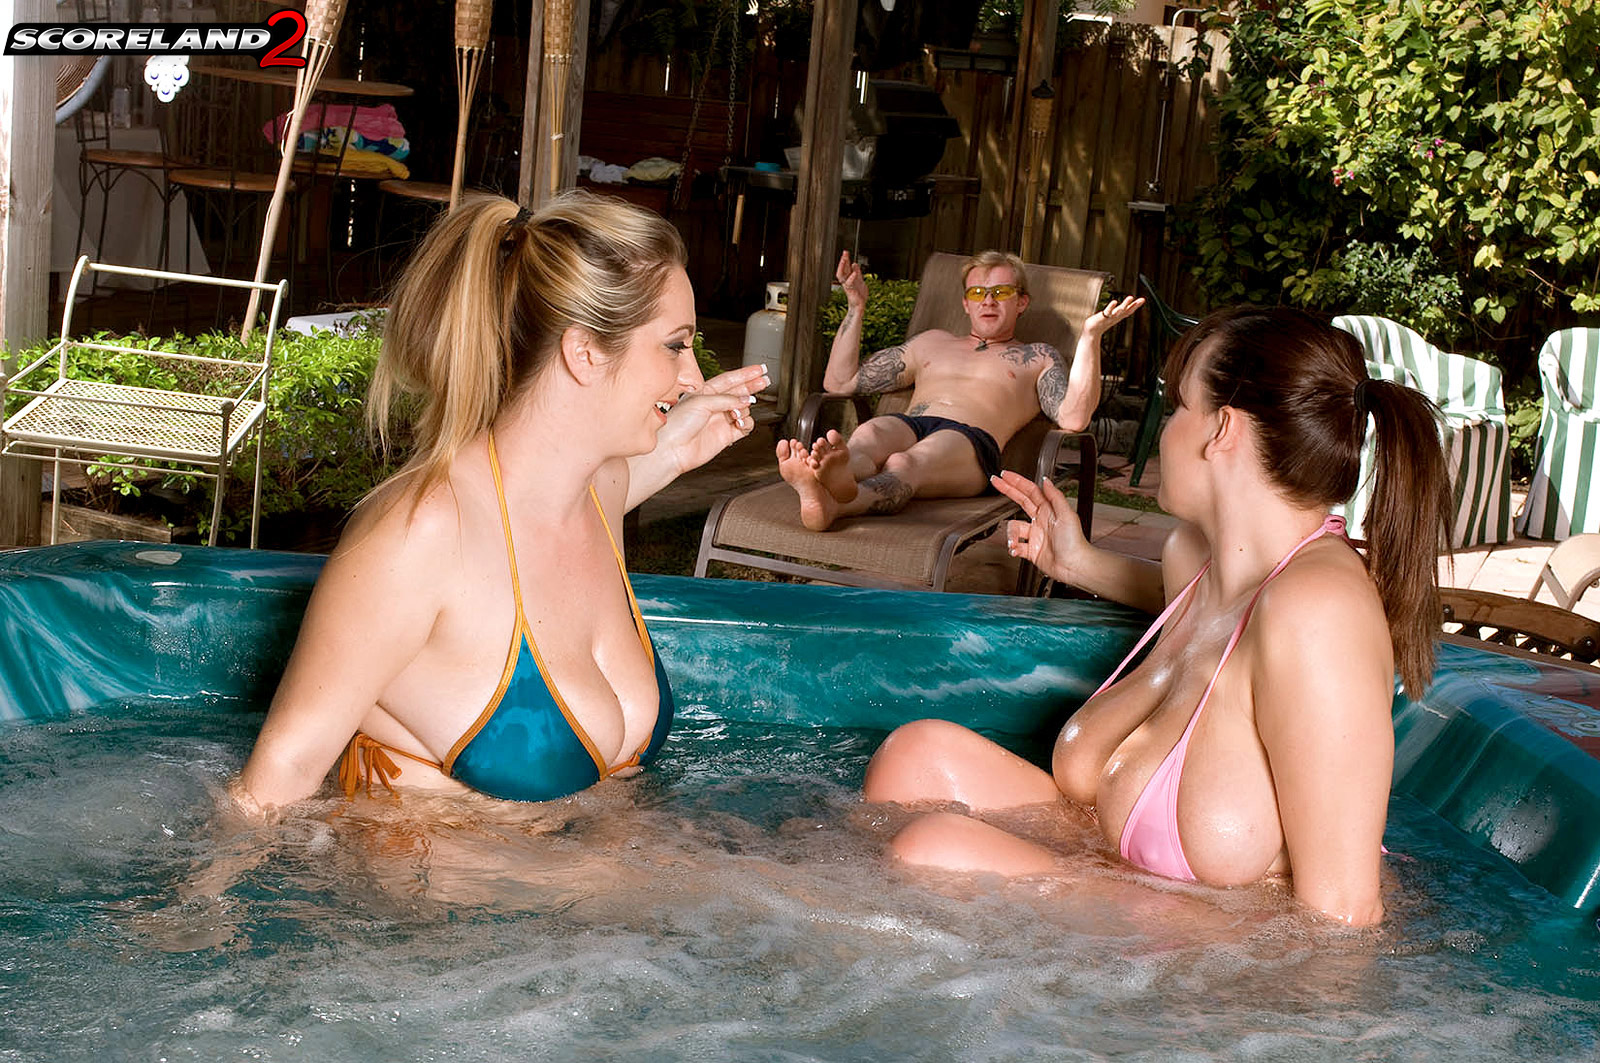 Congratulate, what Brandy taylor april threesome hot tub